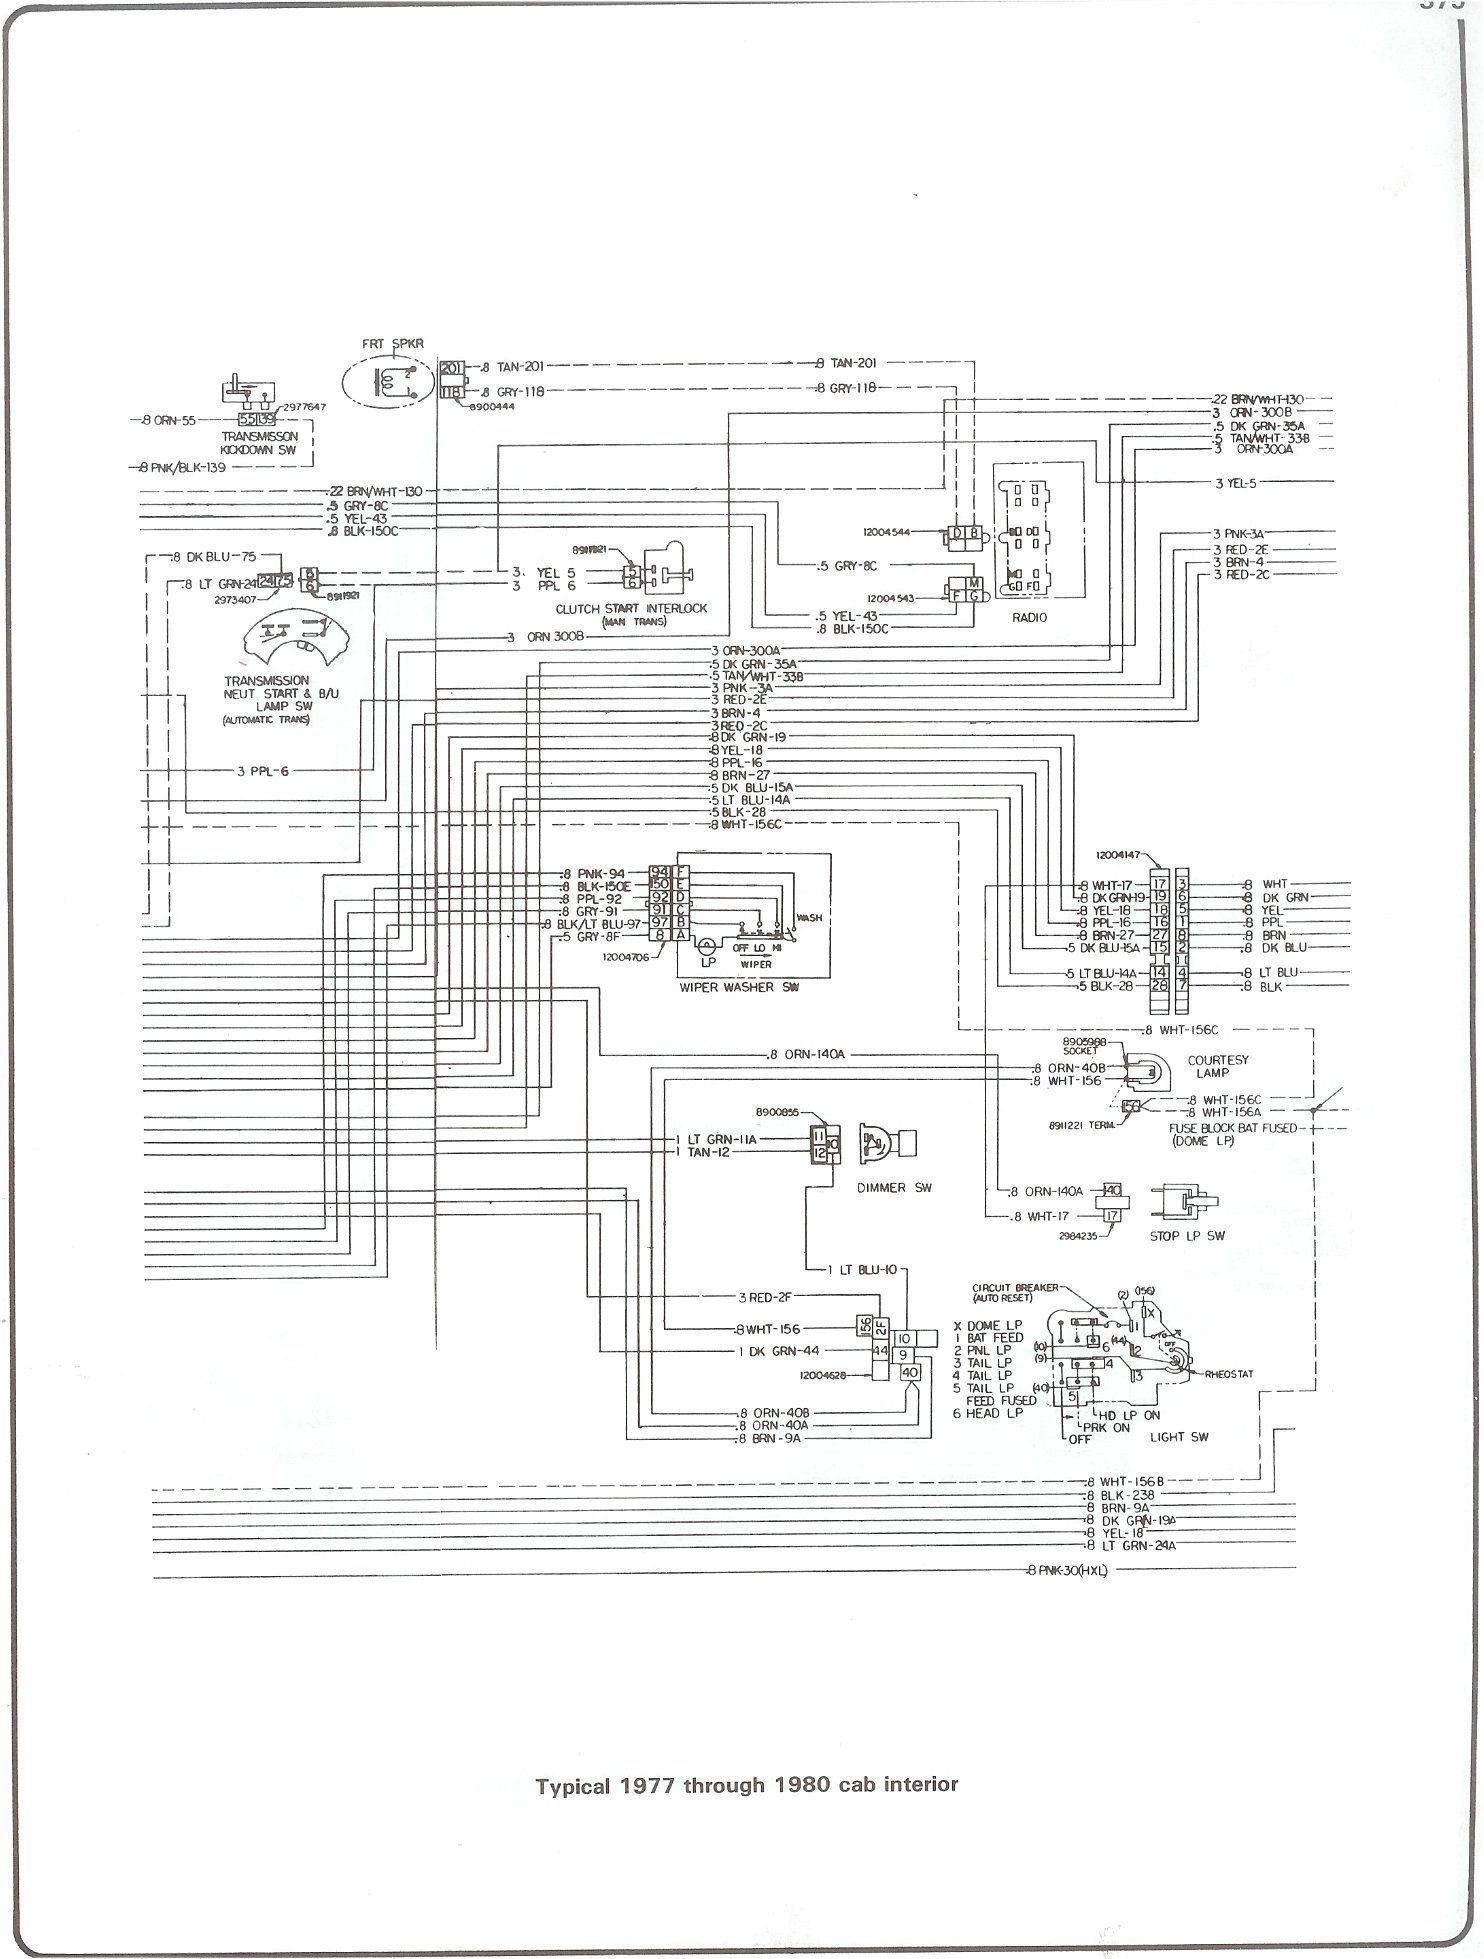 77 Gmc Ignition Wiring Diagram Guide And Troubleshooting Of Omc Boat Images Gallery